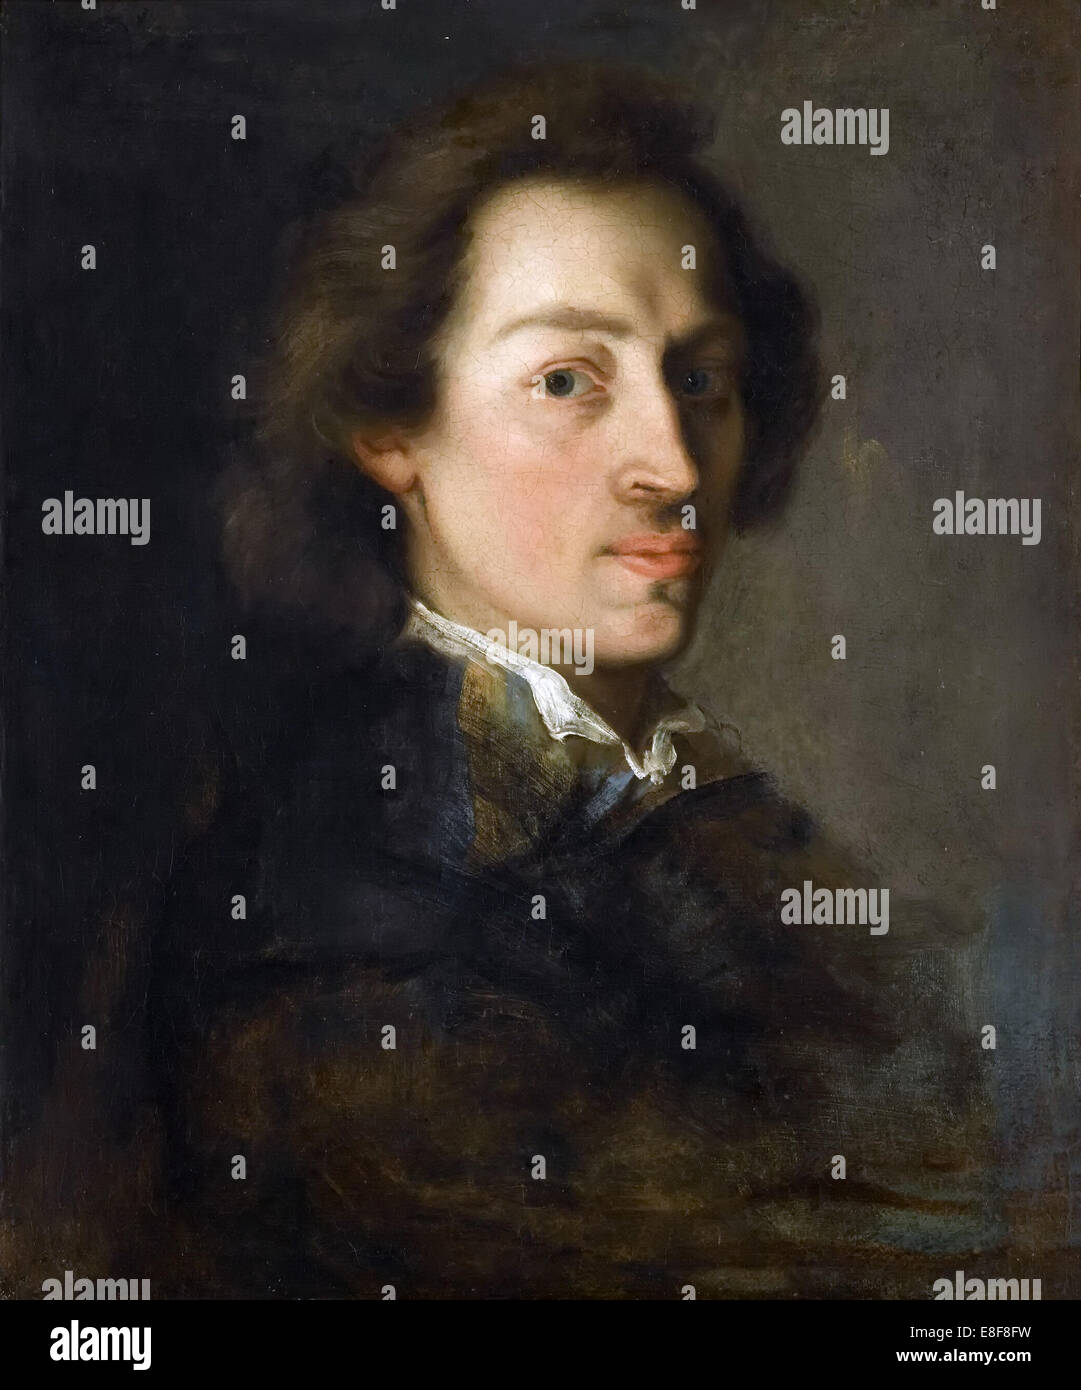 Portrait of Frédéric Chopin. Artist: Scheffer, Ary (1795-1858) - Stock Image